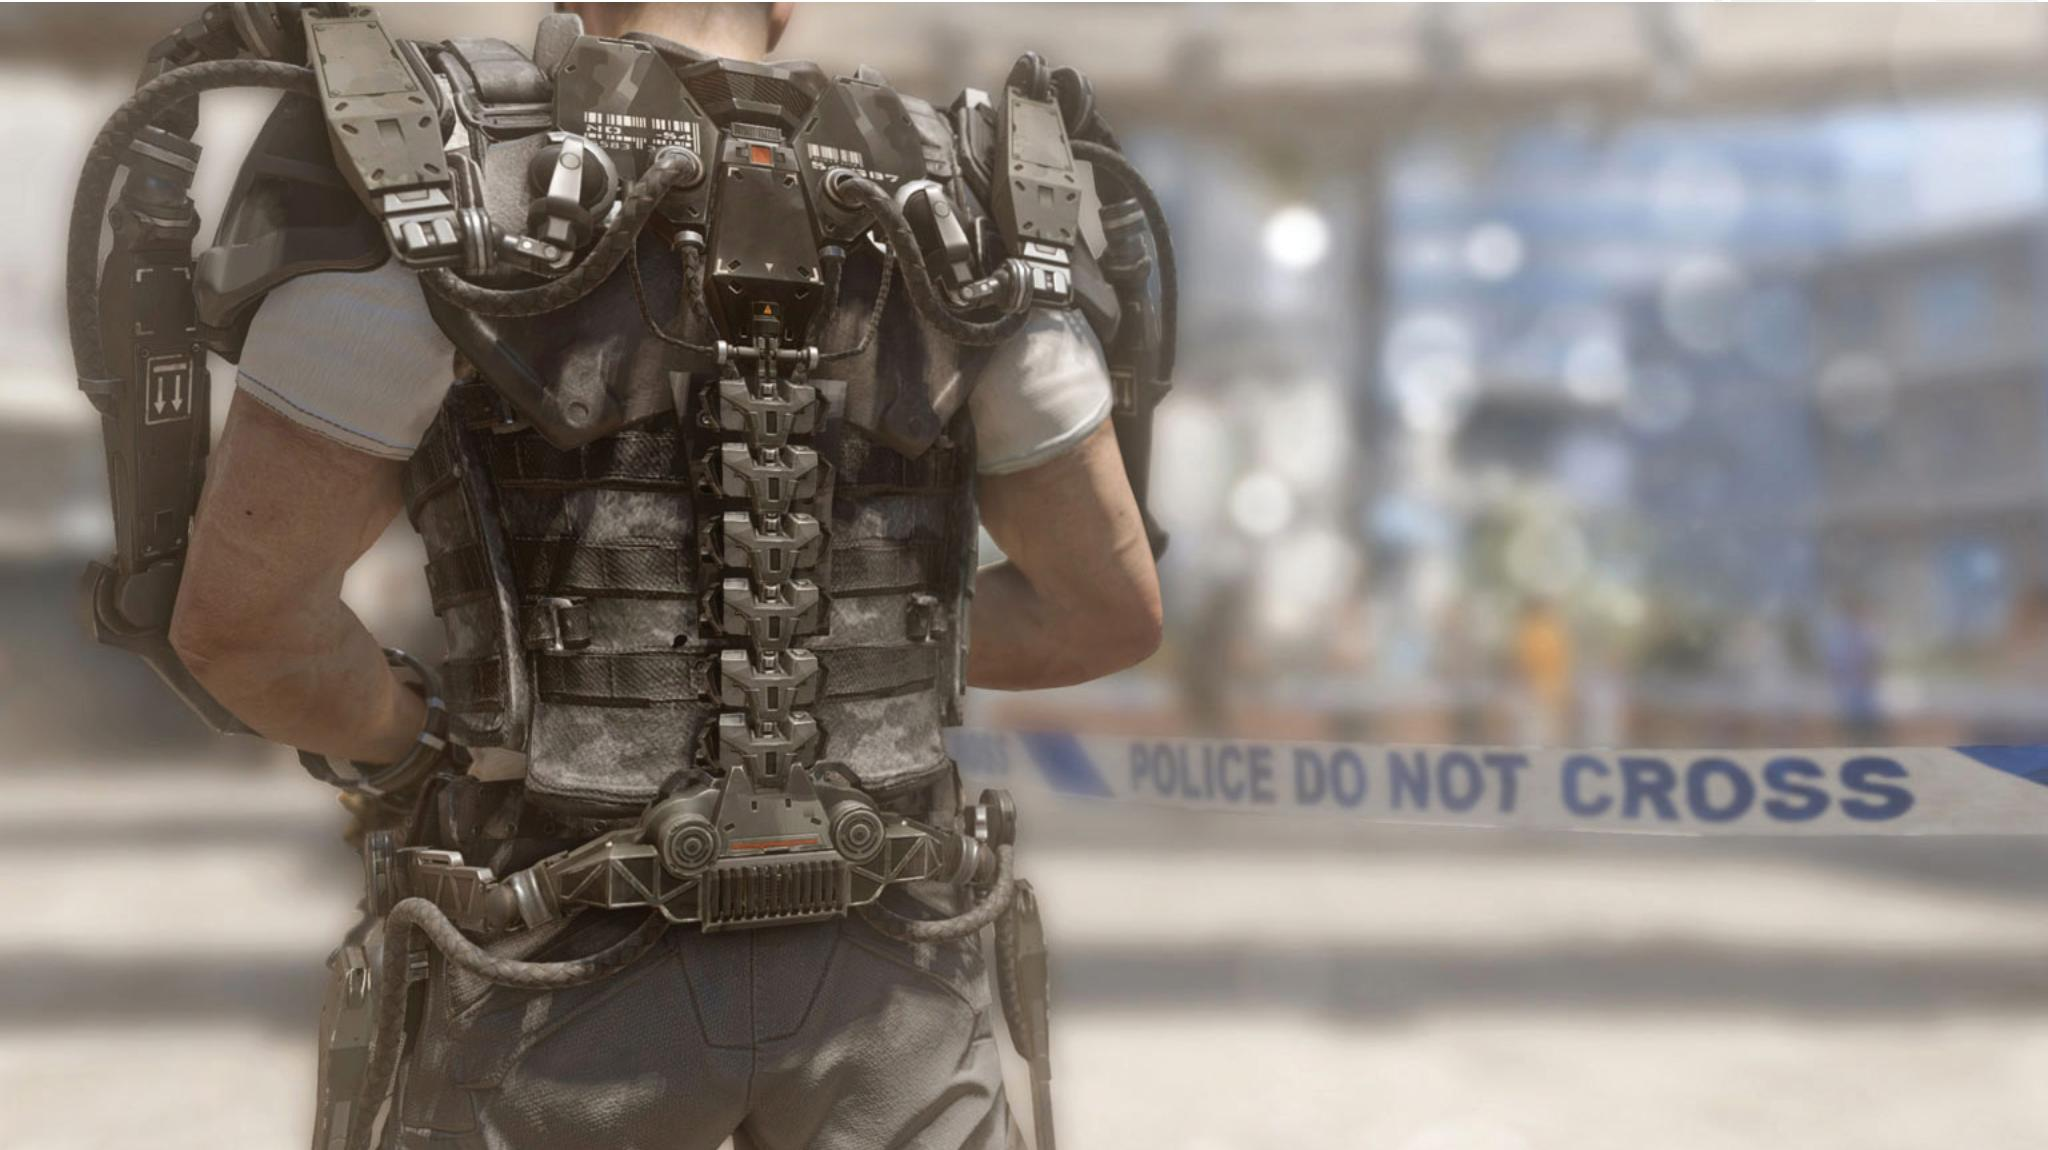 More Call Of Duty Advanced Warfare In Game Screens And